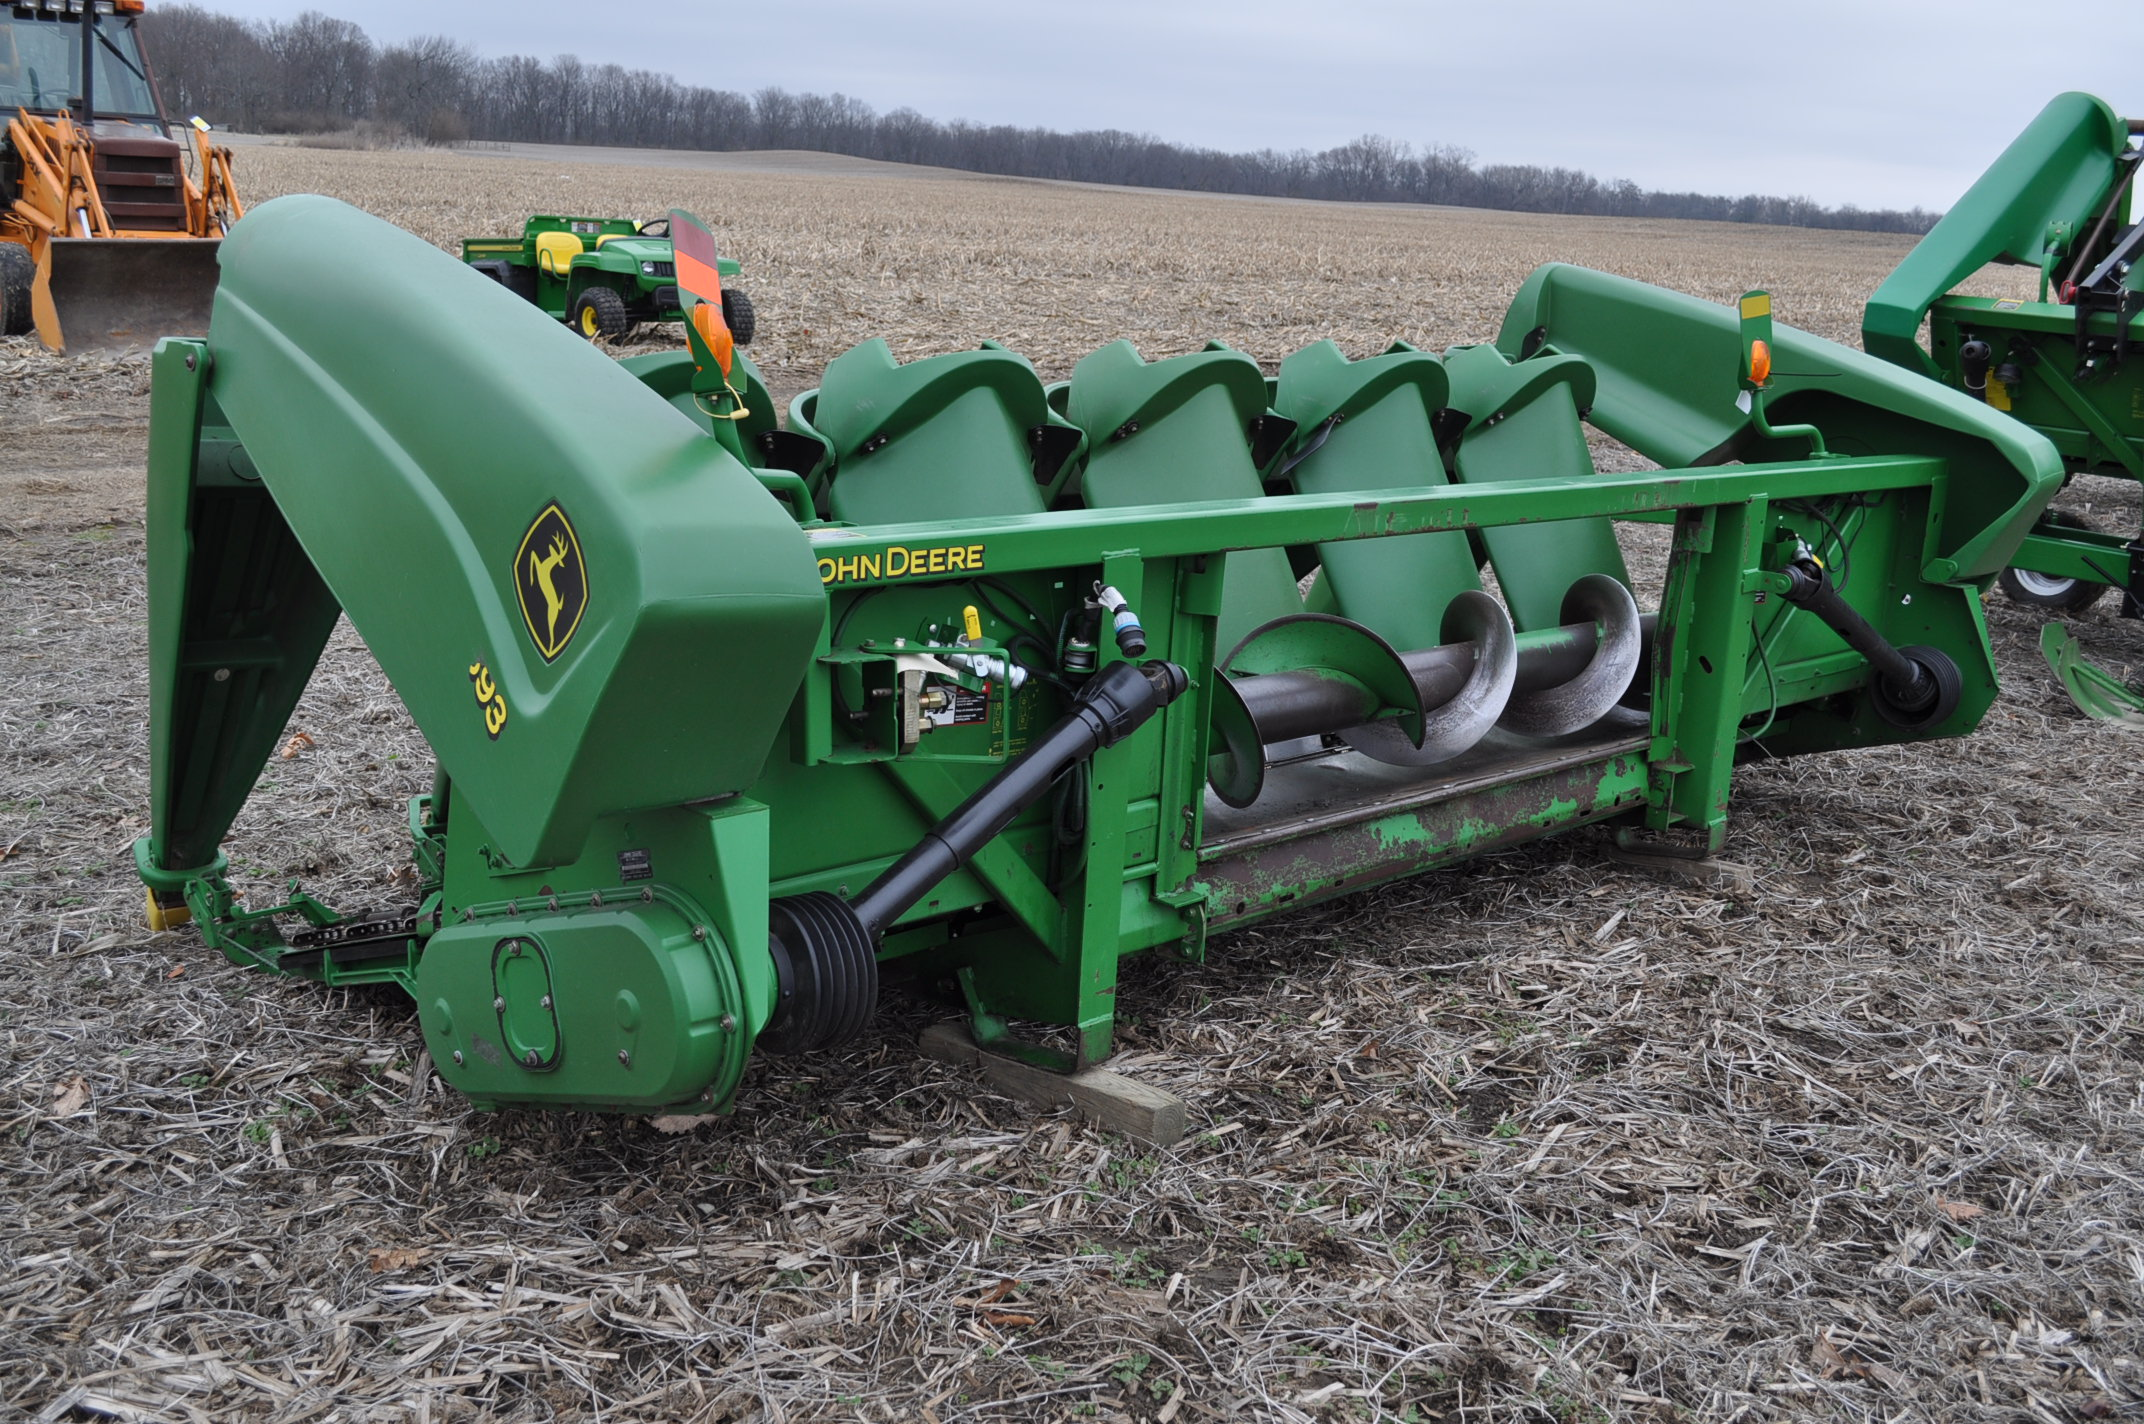 John Deere 693 corn head, poly, fluted rolls, hyd deck plates, pto shafts, SN 710815 - Image 2 of 14